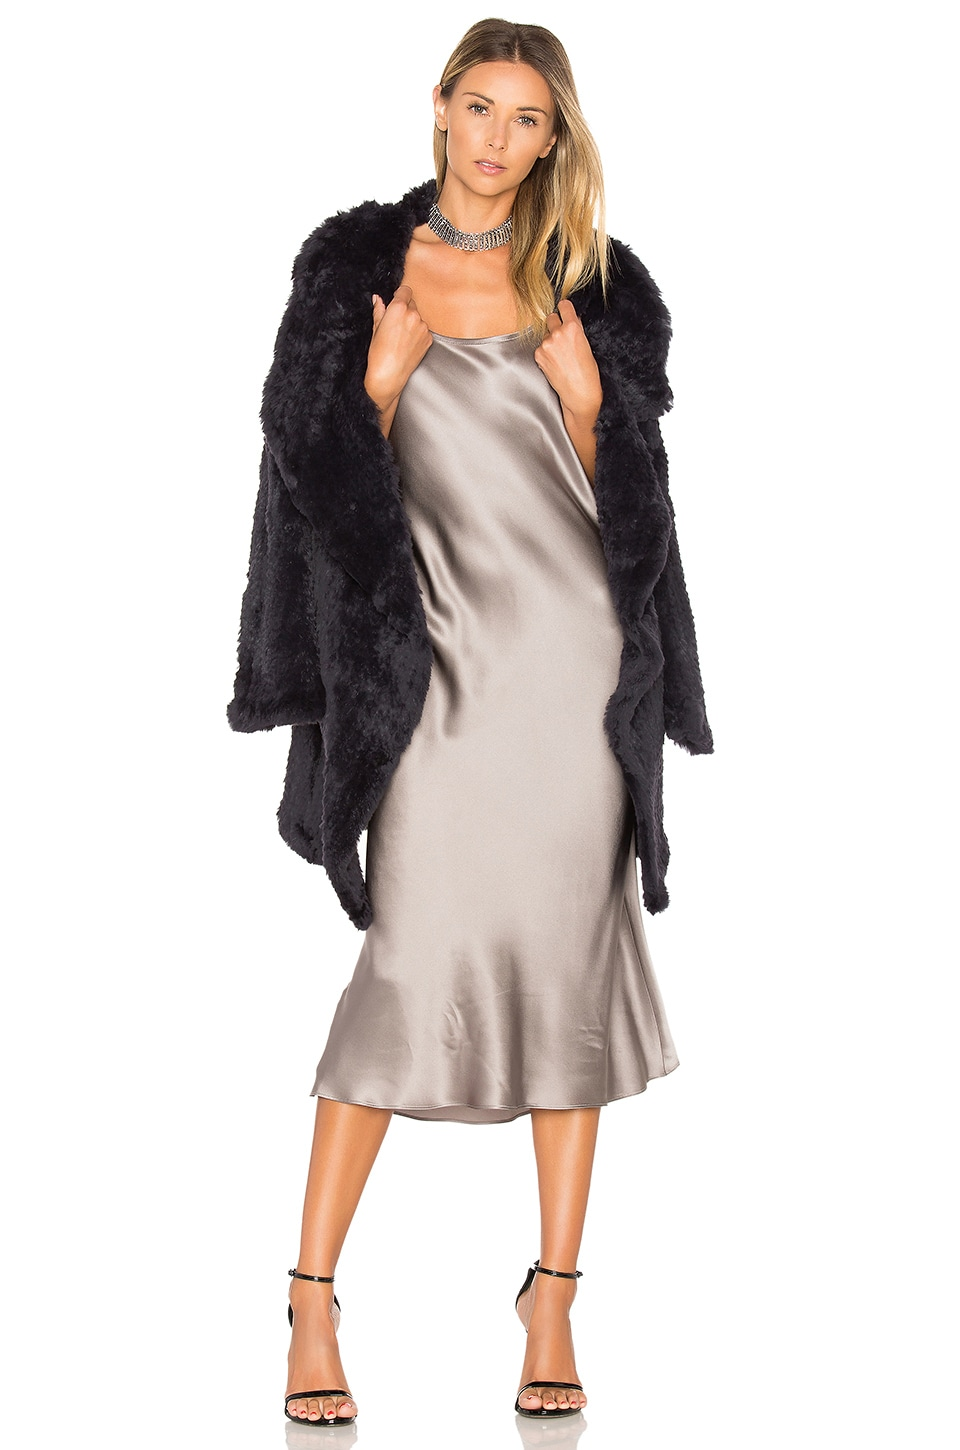 Flair Sleeve Long Rabbit Fur Jacket by June